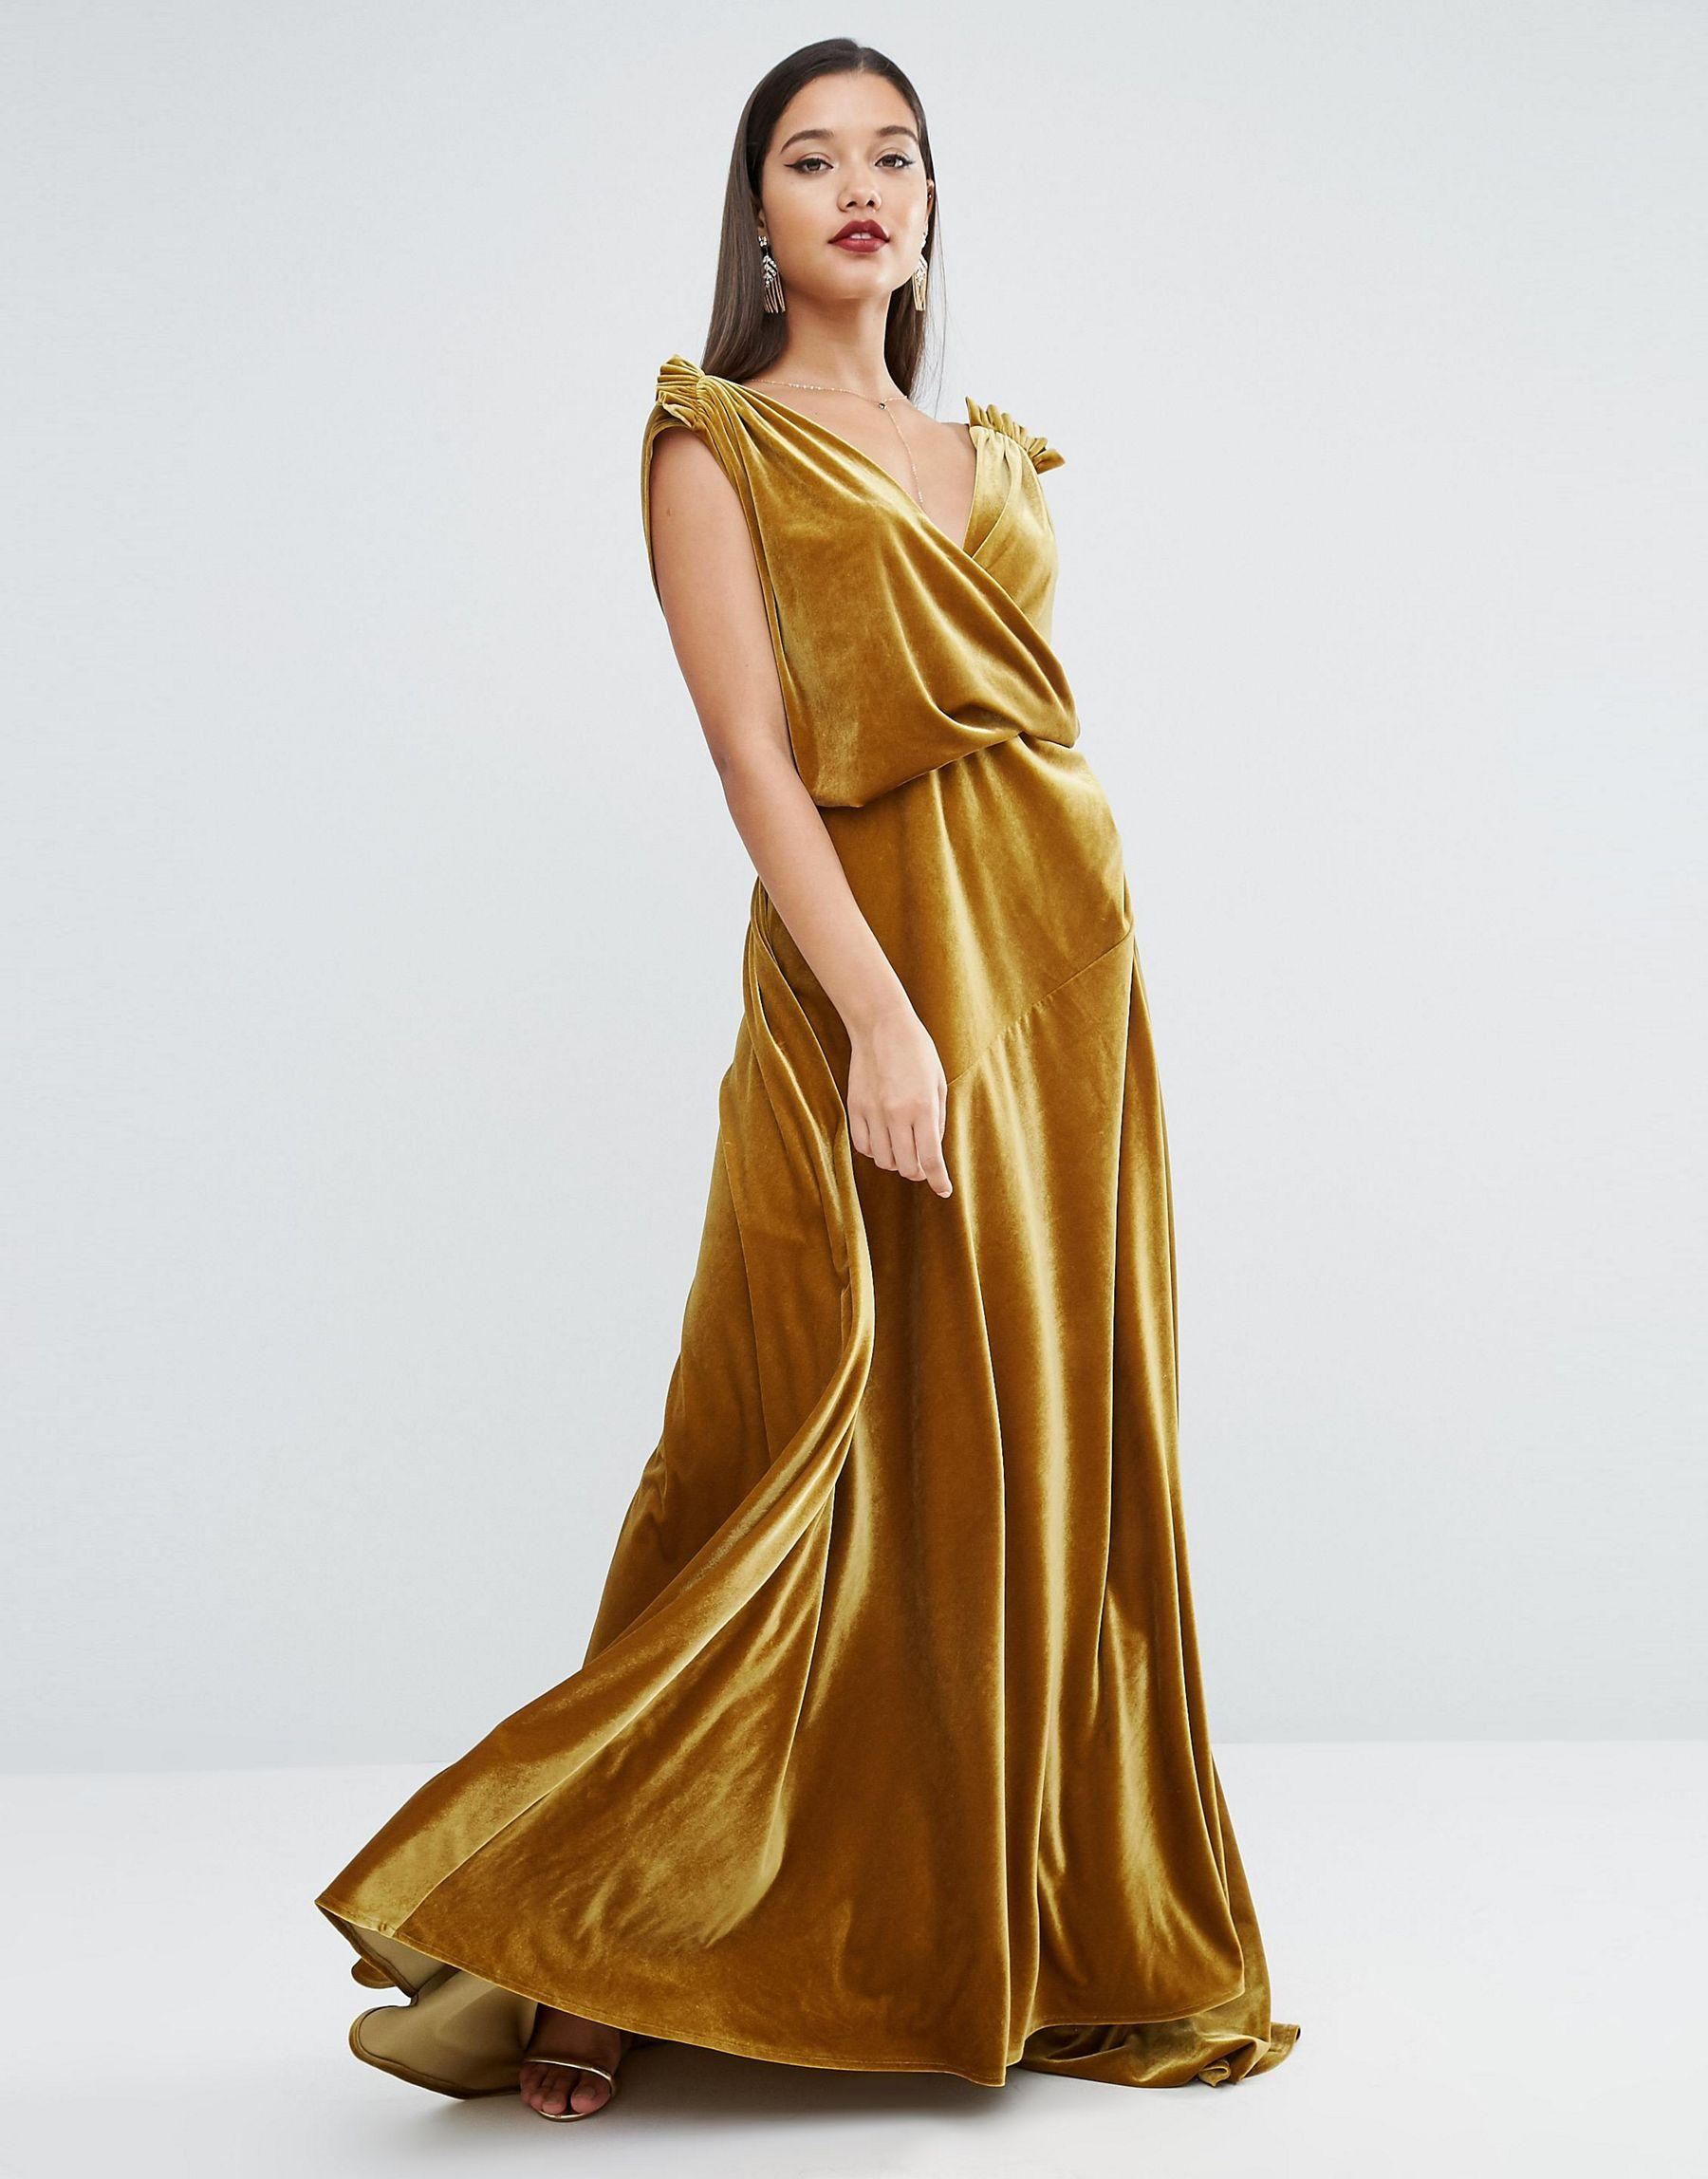 Asos Red Carpet Velvet Drape Maxi Dress Lyst